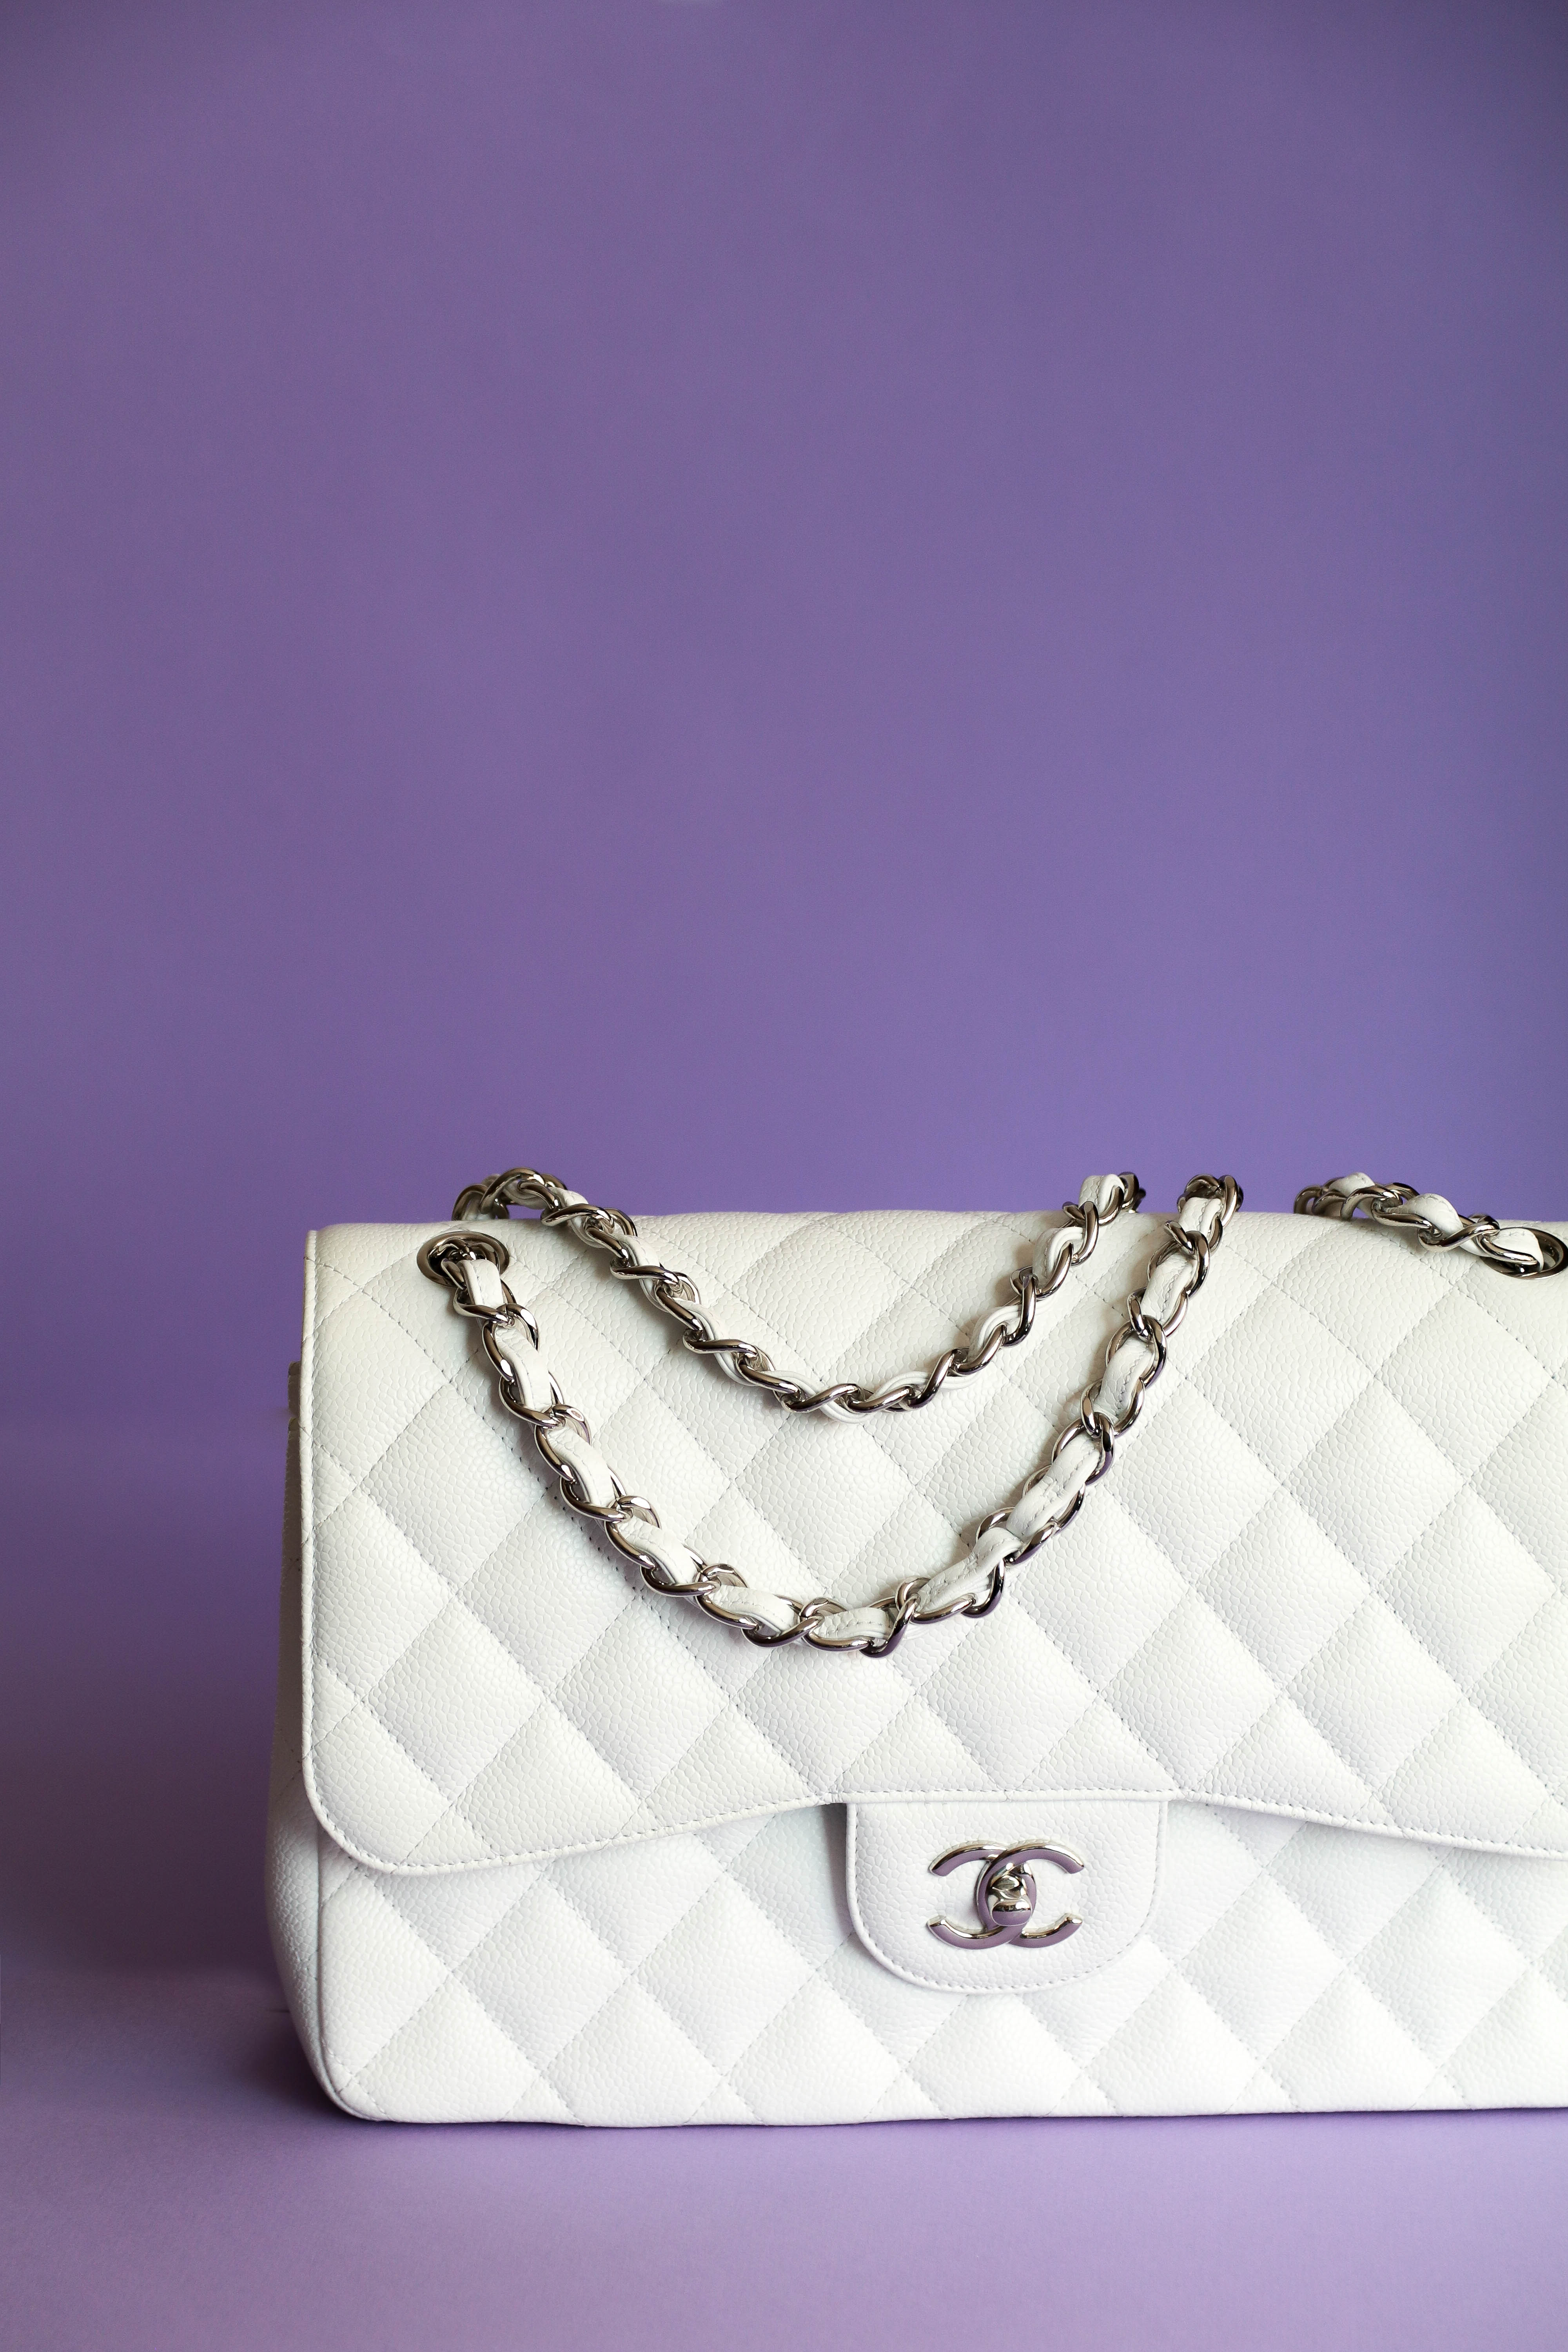 010644c7f101 5 Amazing Things You Never Knew About Chanel - modaselle